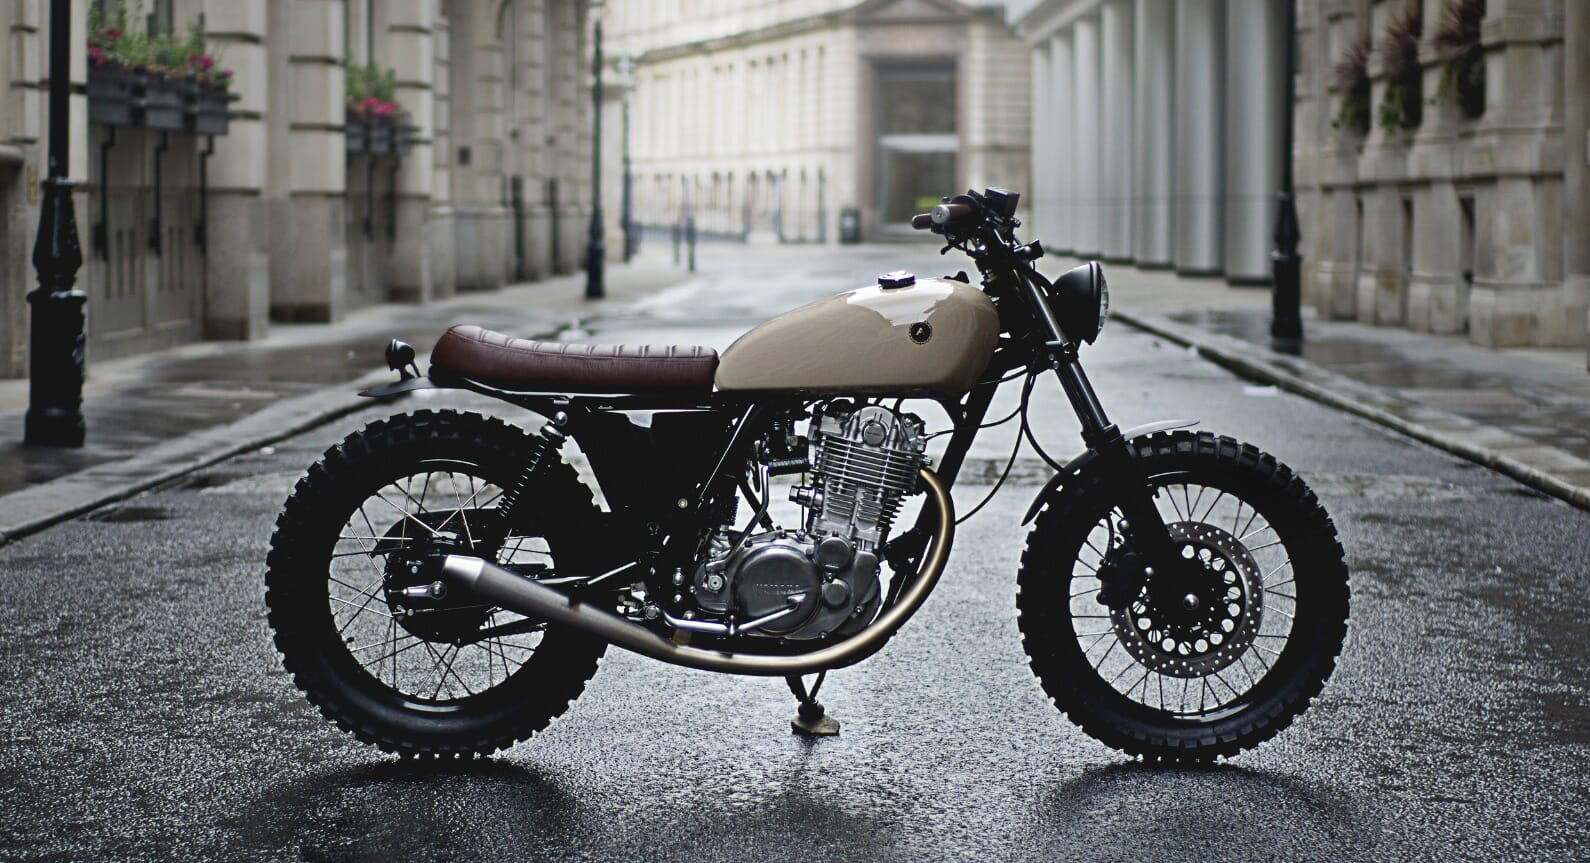 The Bespoke Auto Fabrica Type 7 Built For Off-Road Escapism